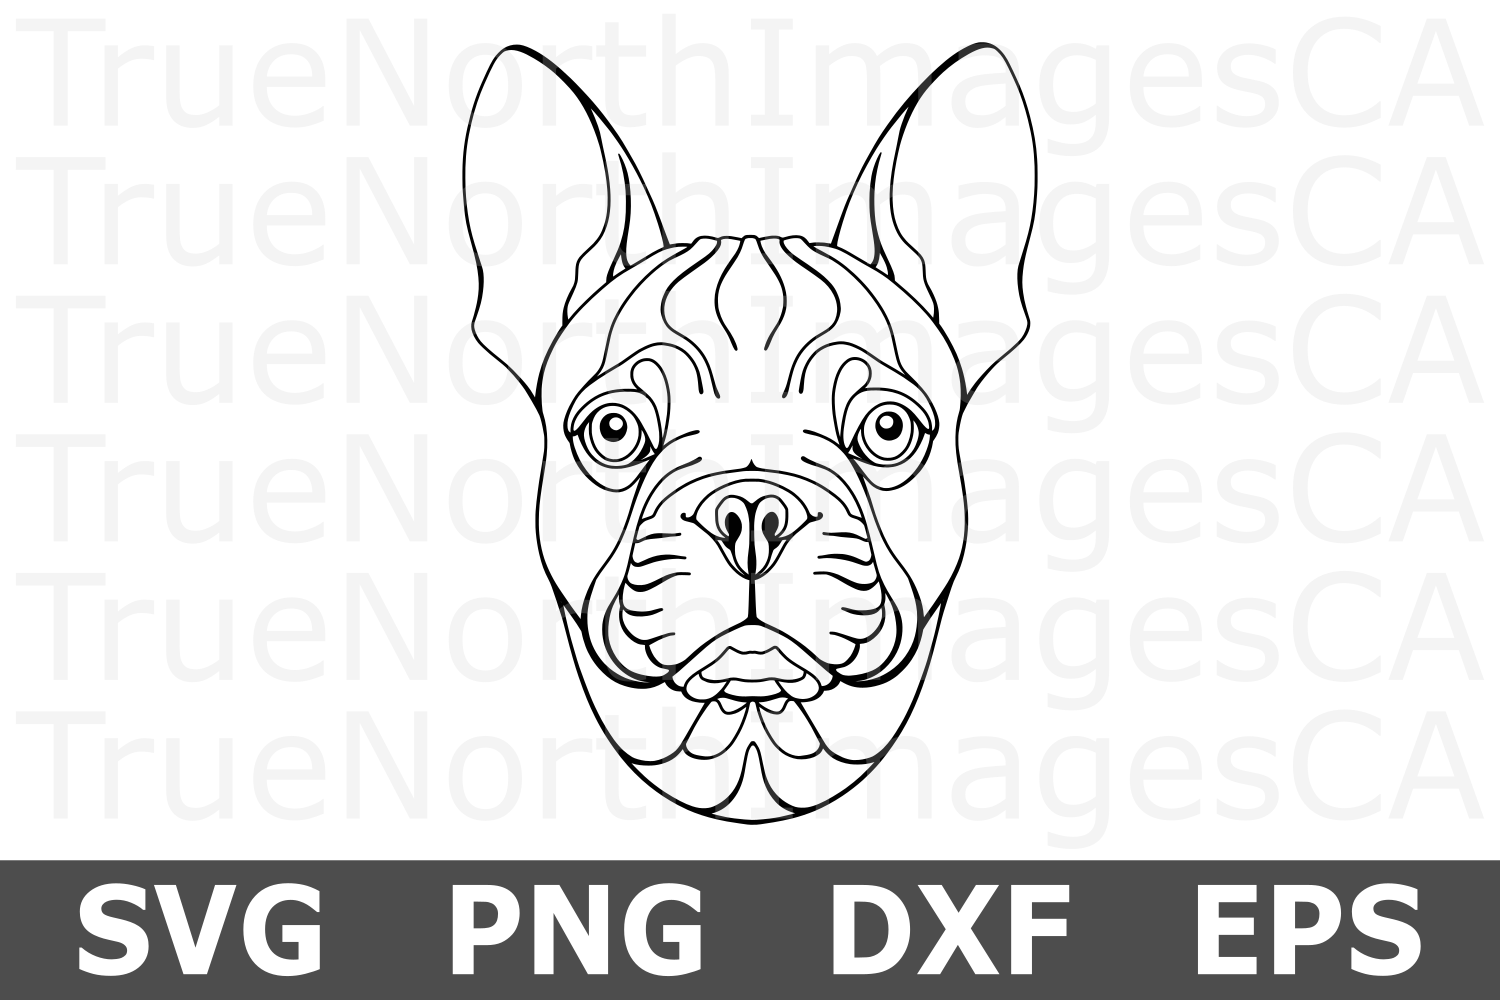 French Bulldog - An Animal SVG Cut File example image 1